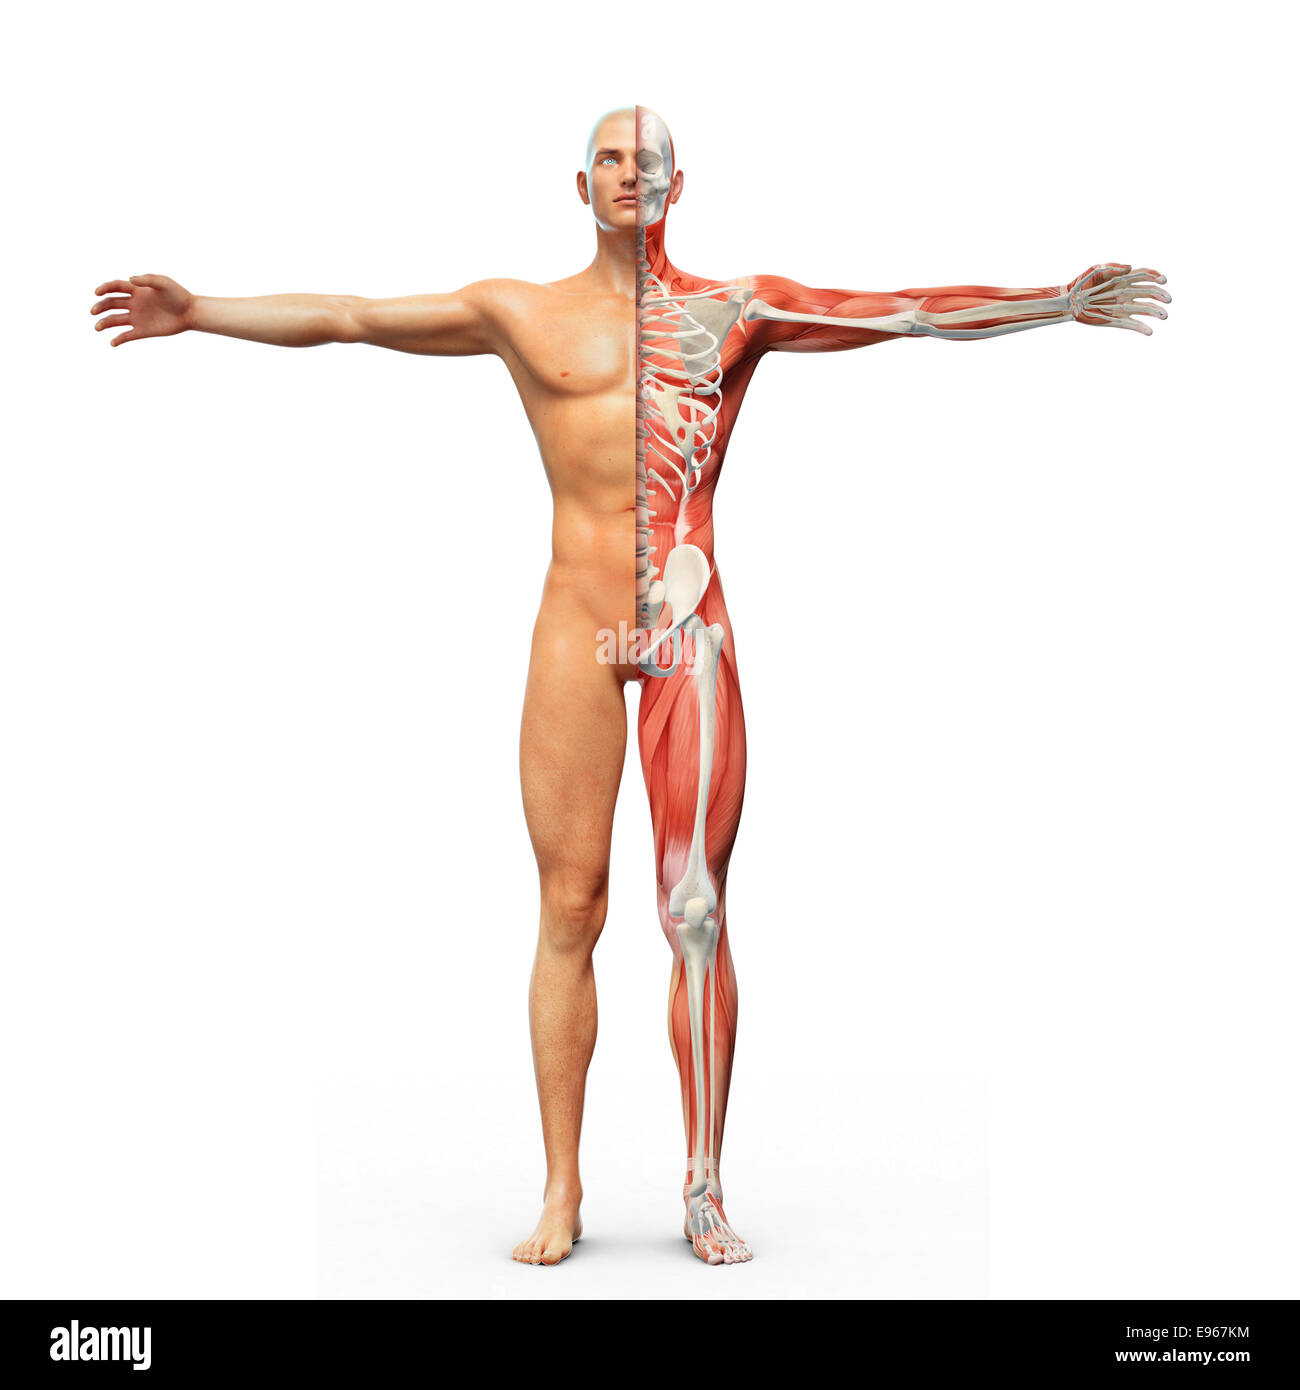 Human anatomy with visible skeleton and muscles - Stock Image